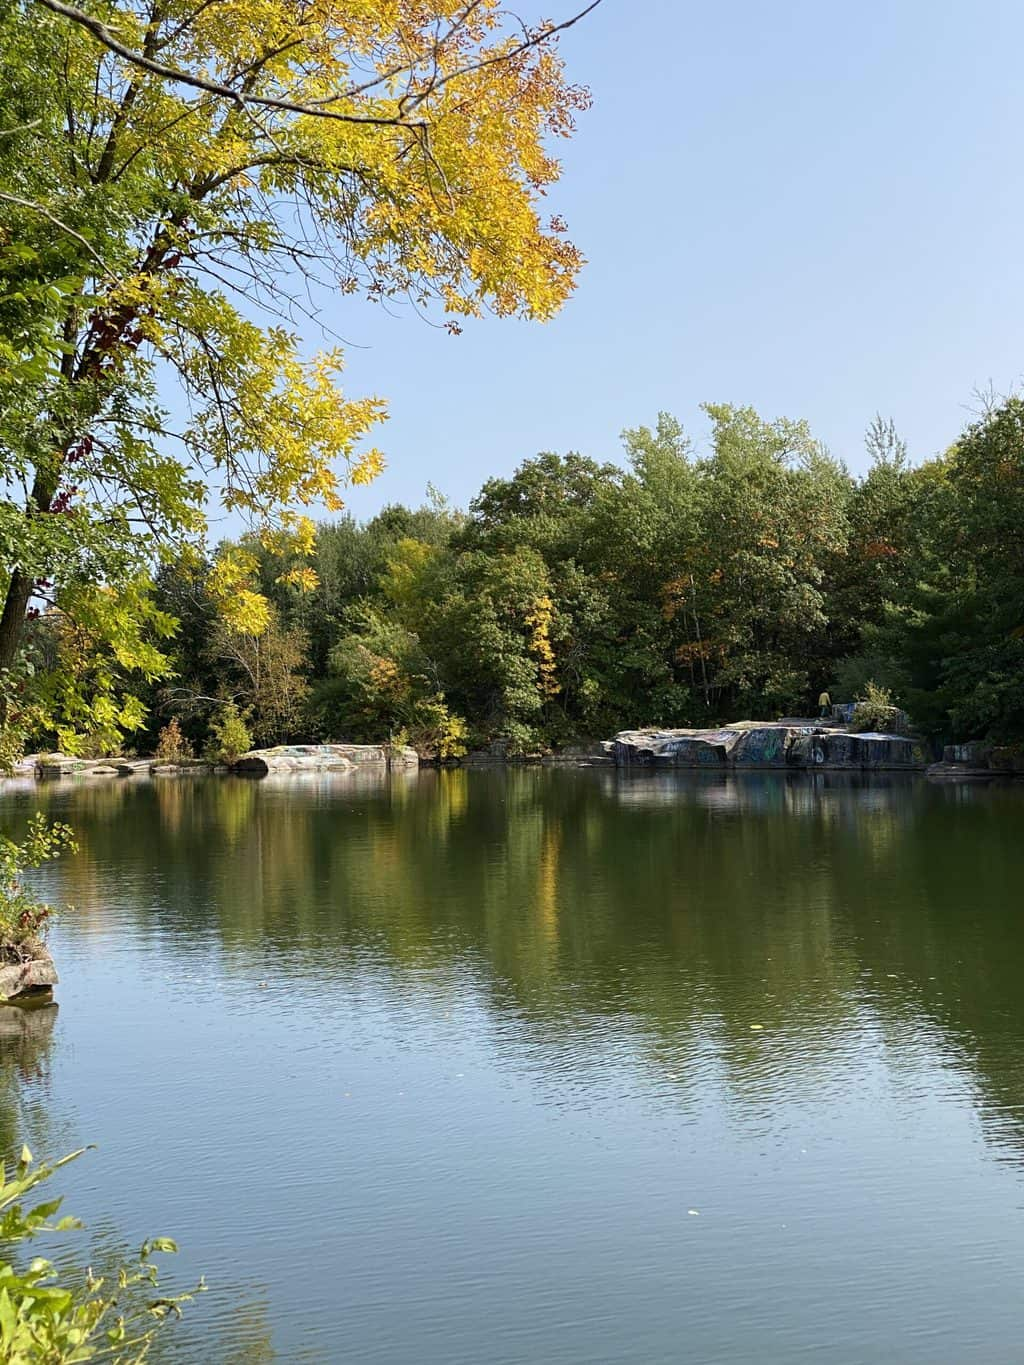 One of the old quarries near St. Cloud MN